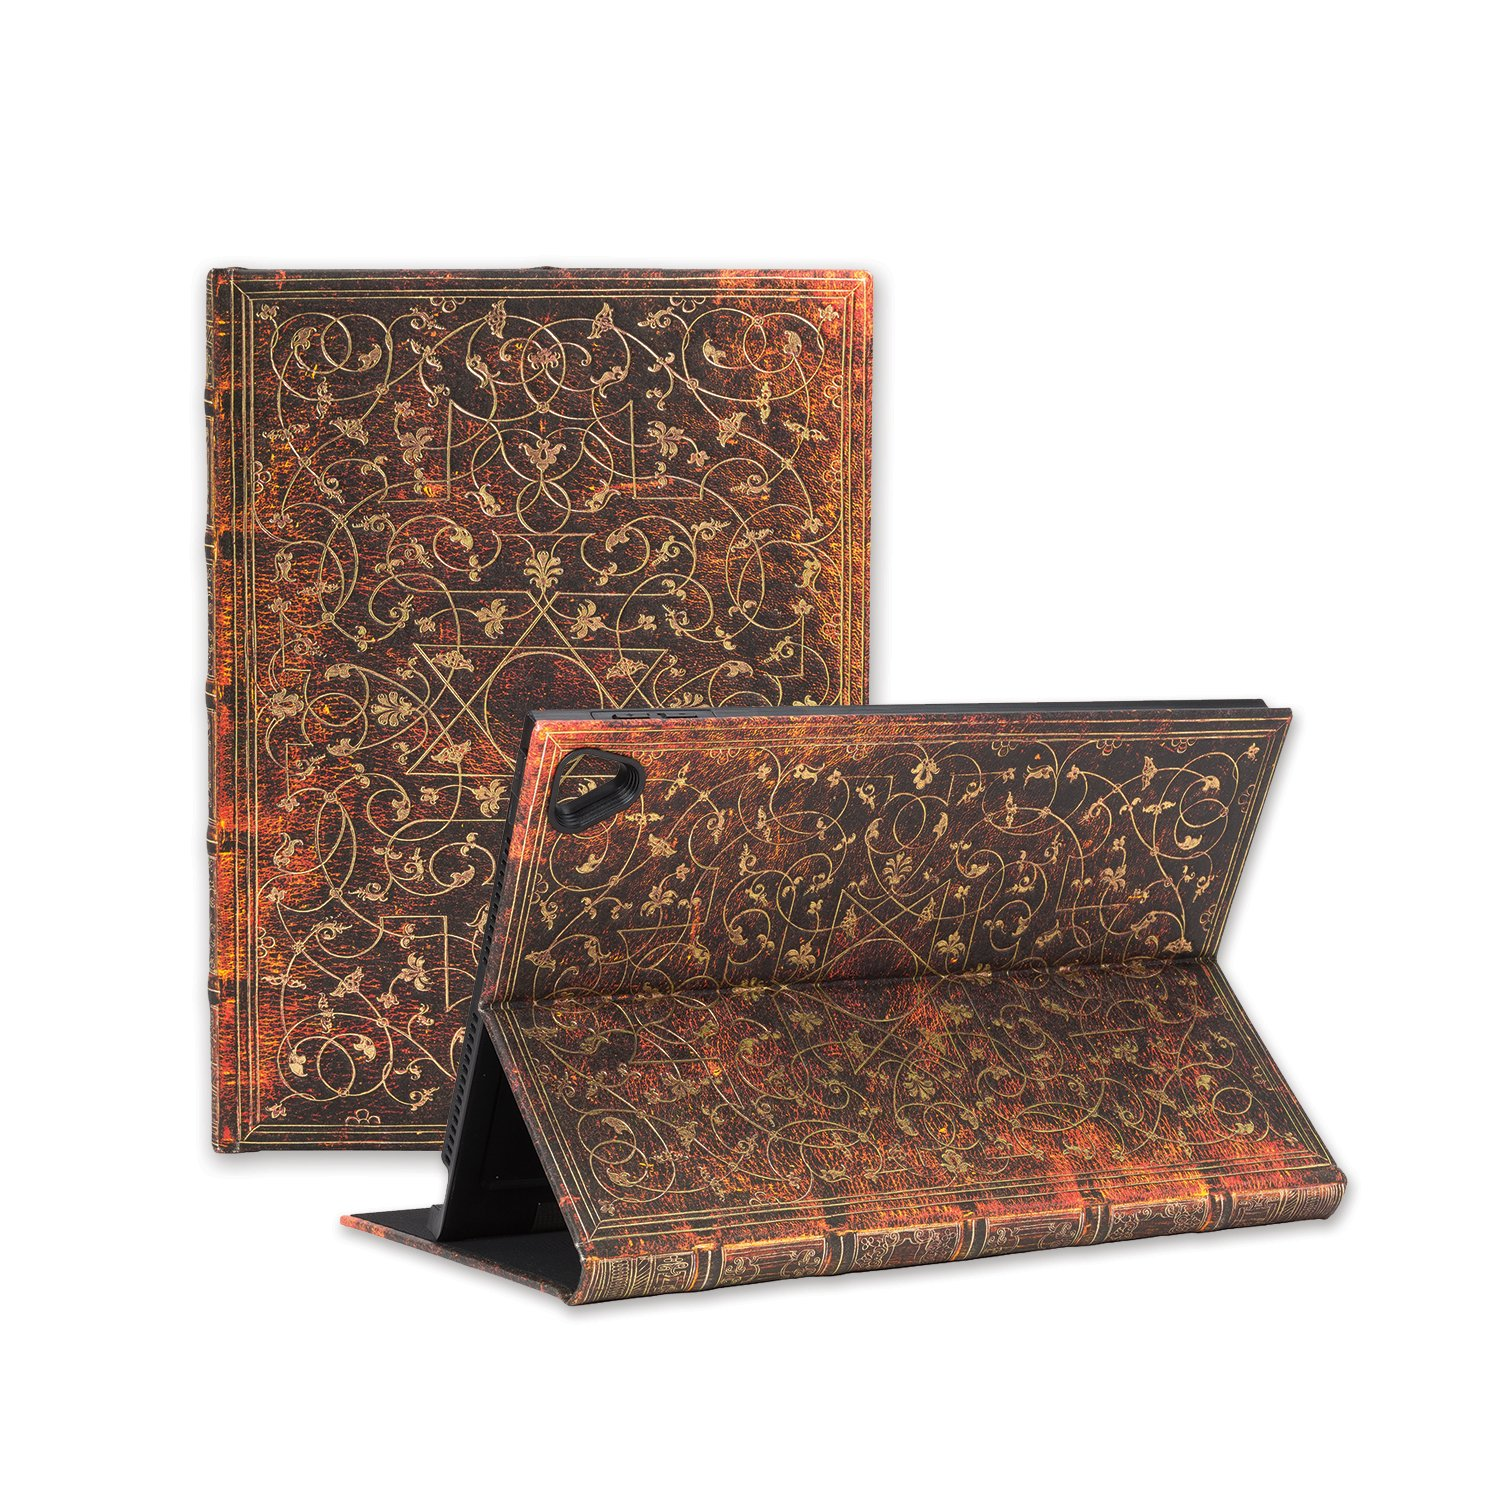 Paperblanks eXchange case for Apple iPad Pro 9.7 / Air 2, Infinite Viewing Angle Case – Grolier Design